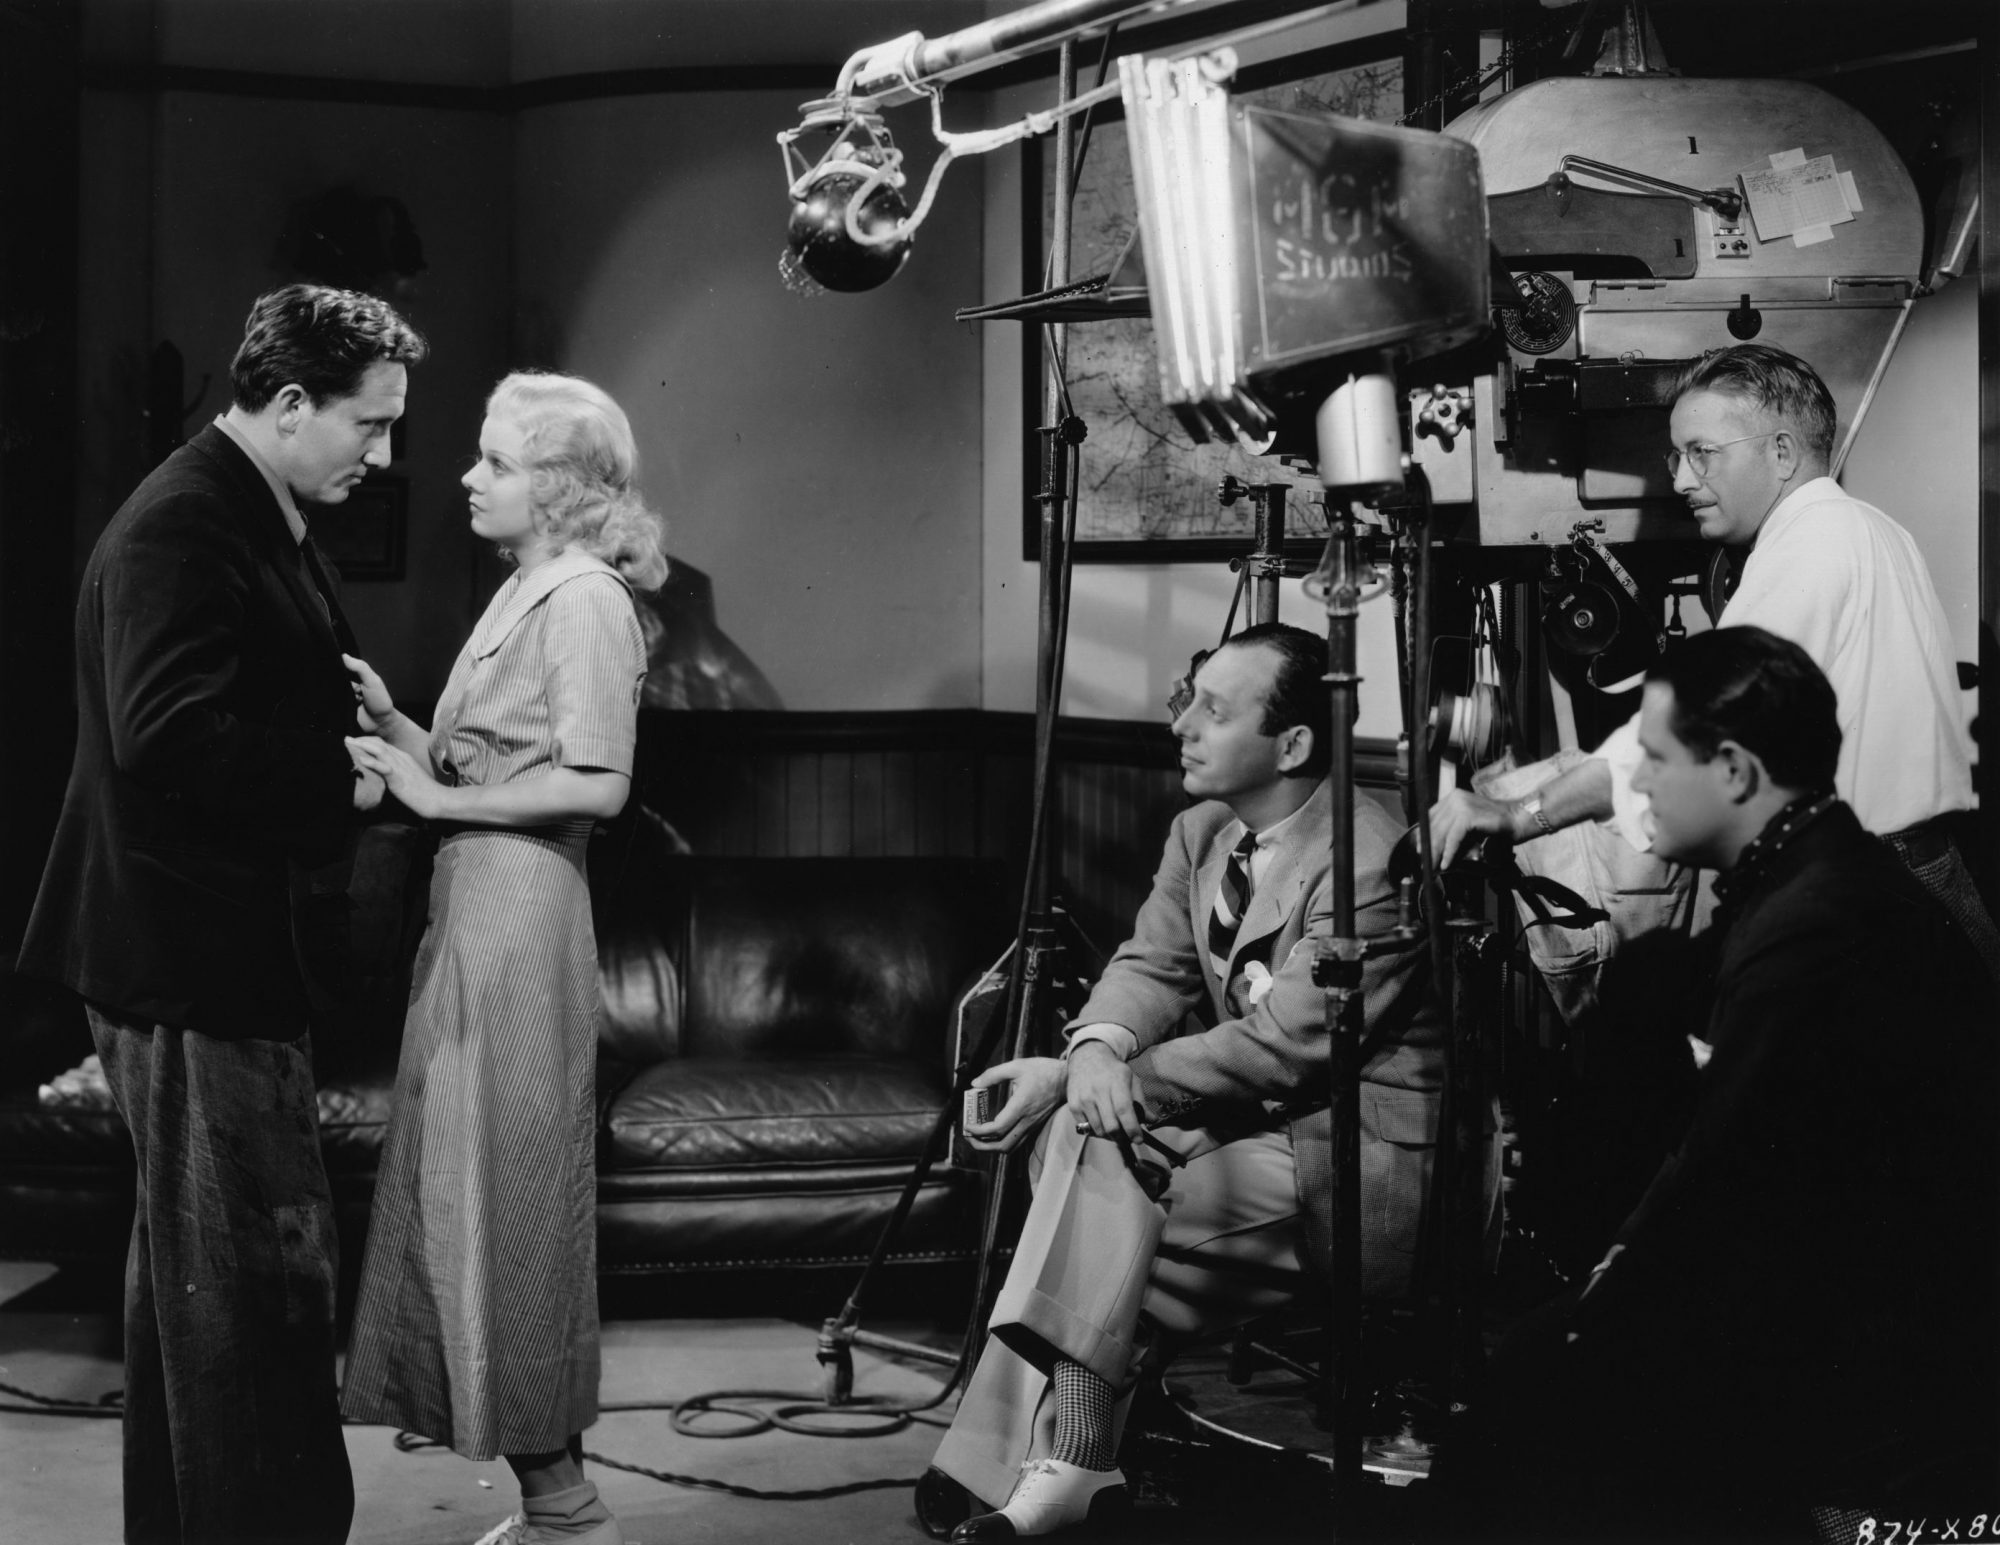 making a scene in the film 'Riff Raff' for MGM